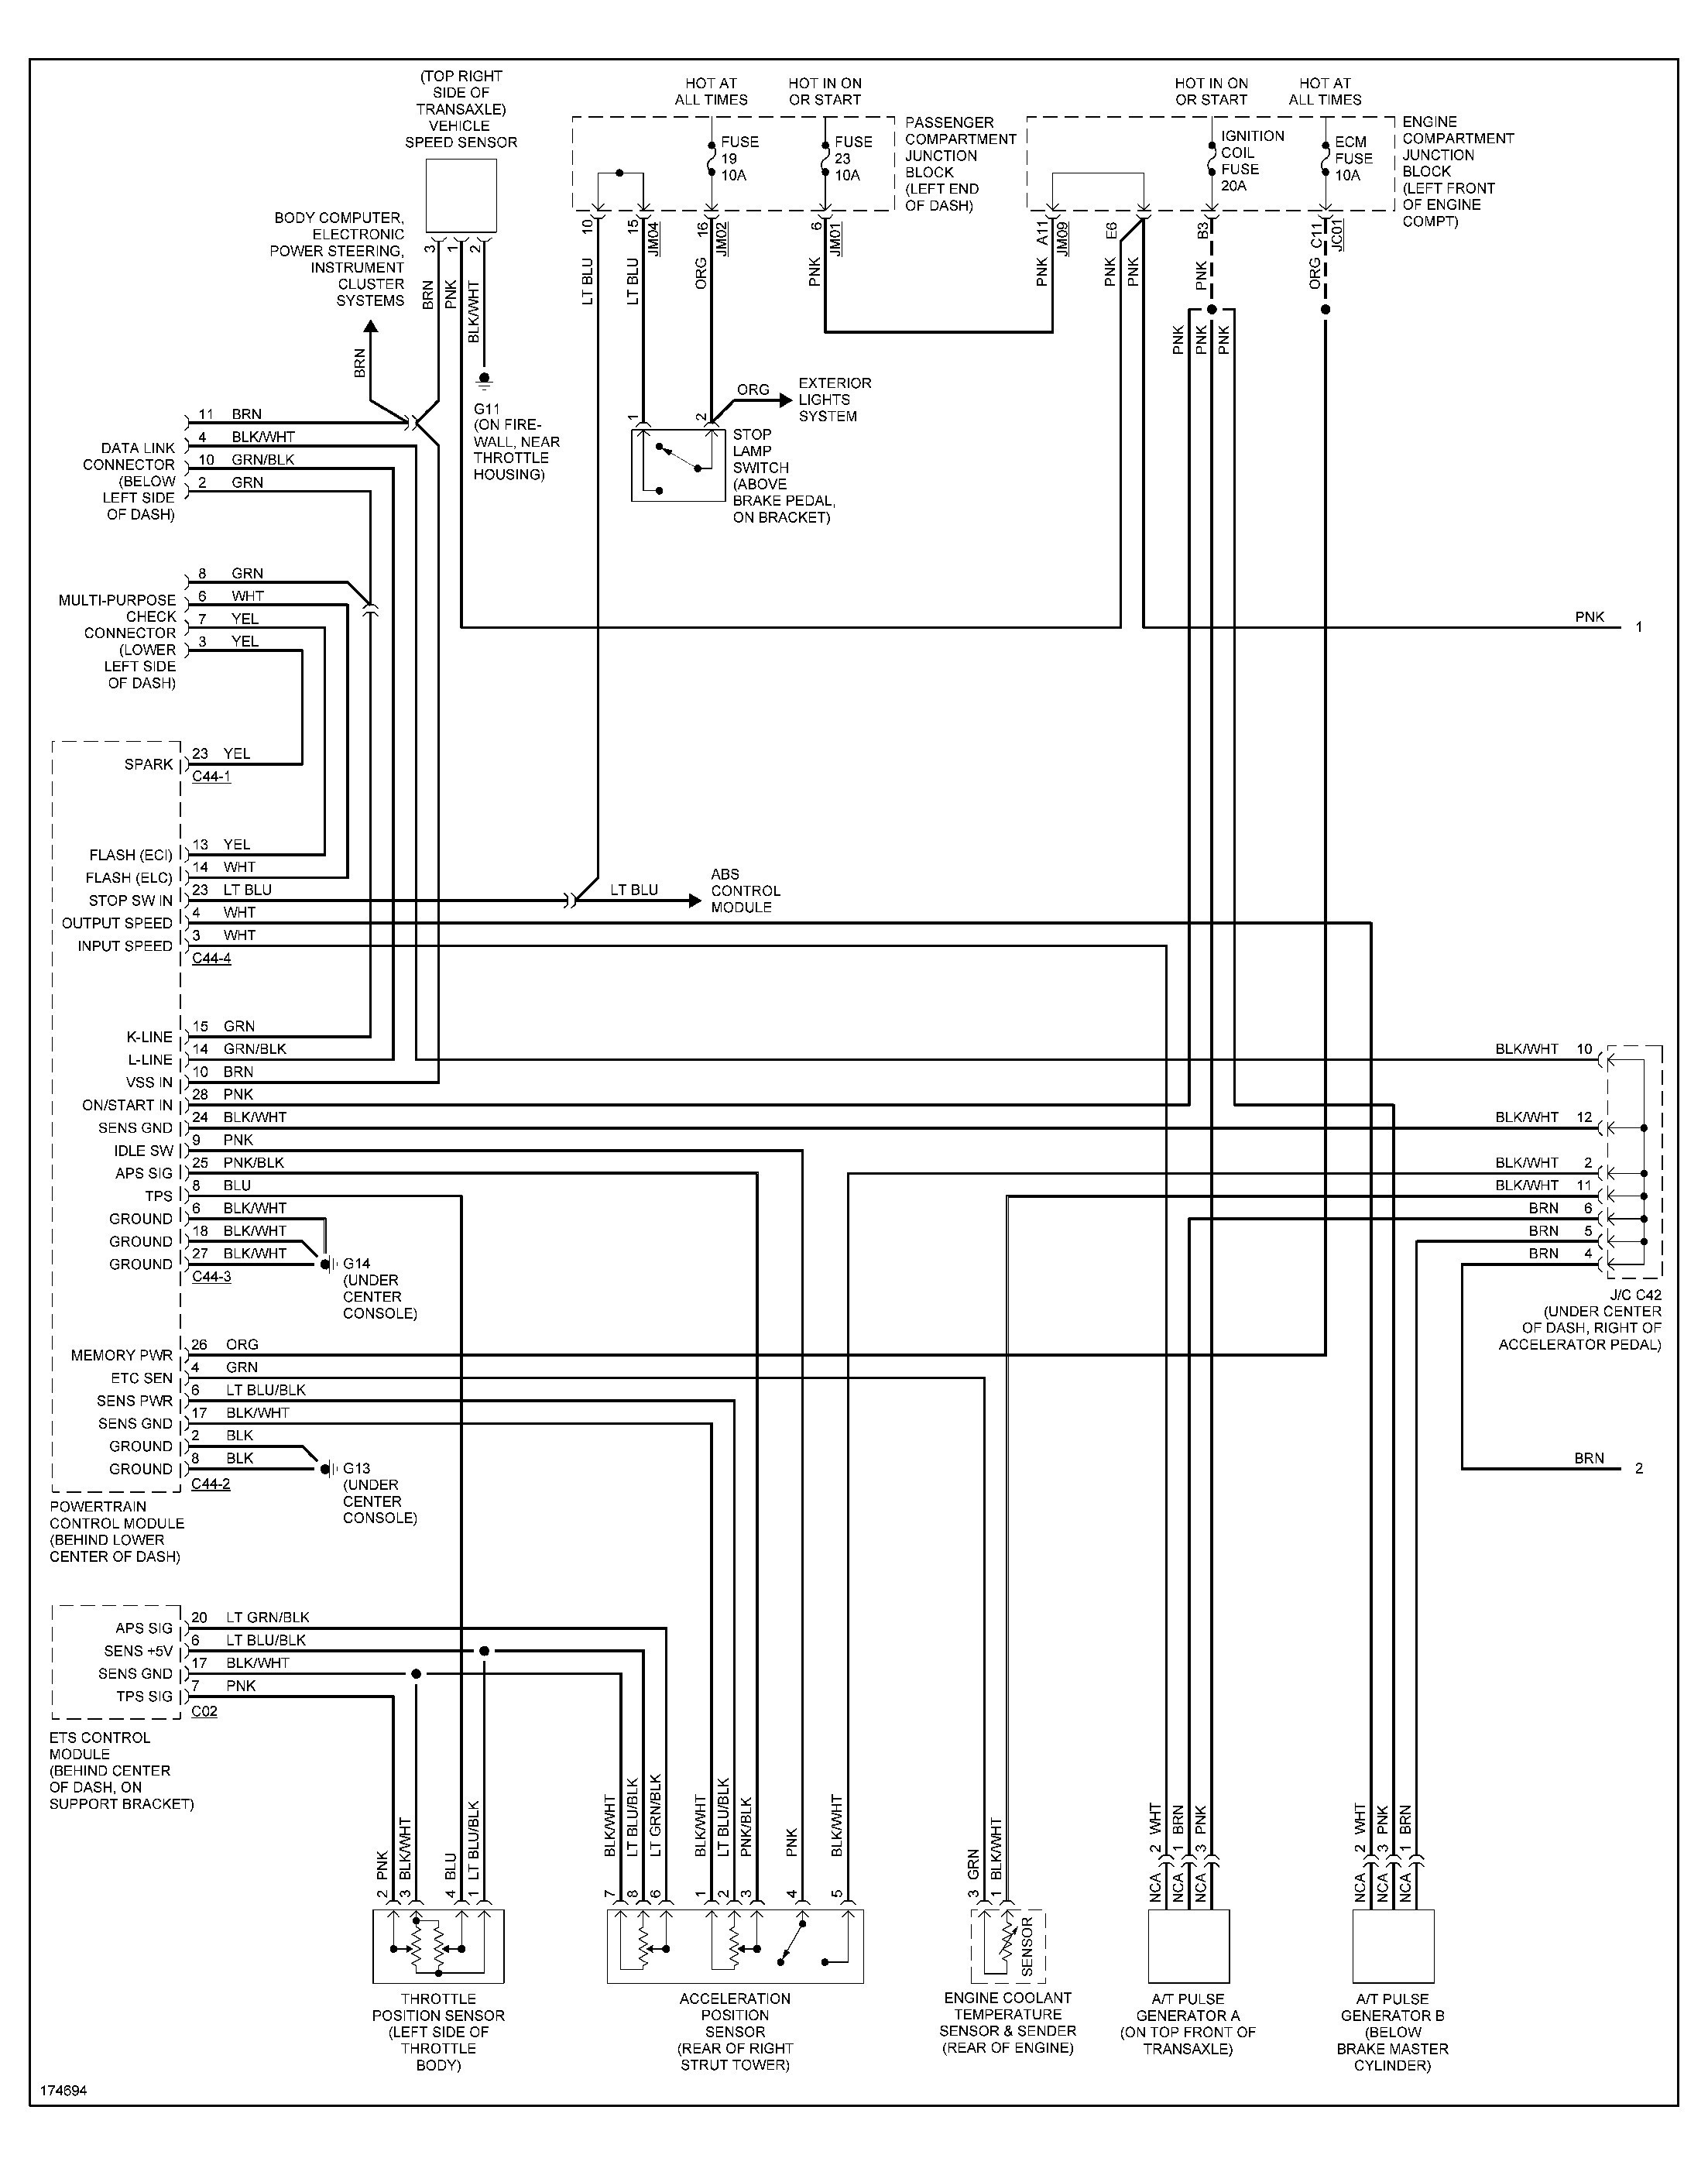 ground wire diagram 2006 hyundai sante fe electrical wiring rh  universalservices co 2007 hyundai santa fe engine diagram 2007 Hyundai Santa  Fe Engine ...